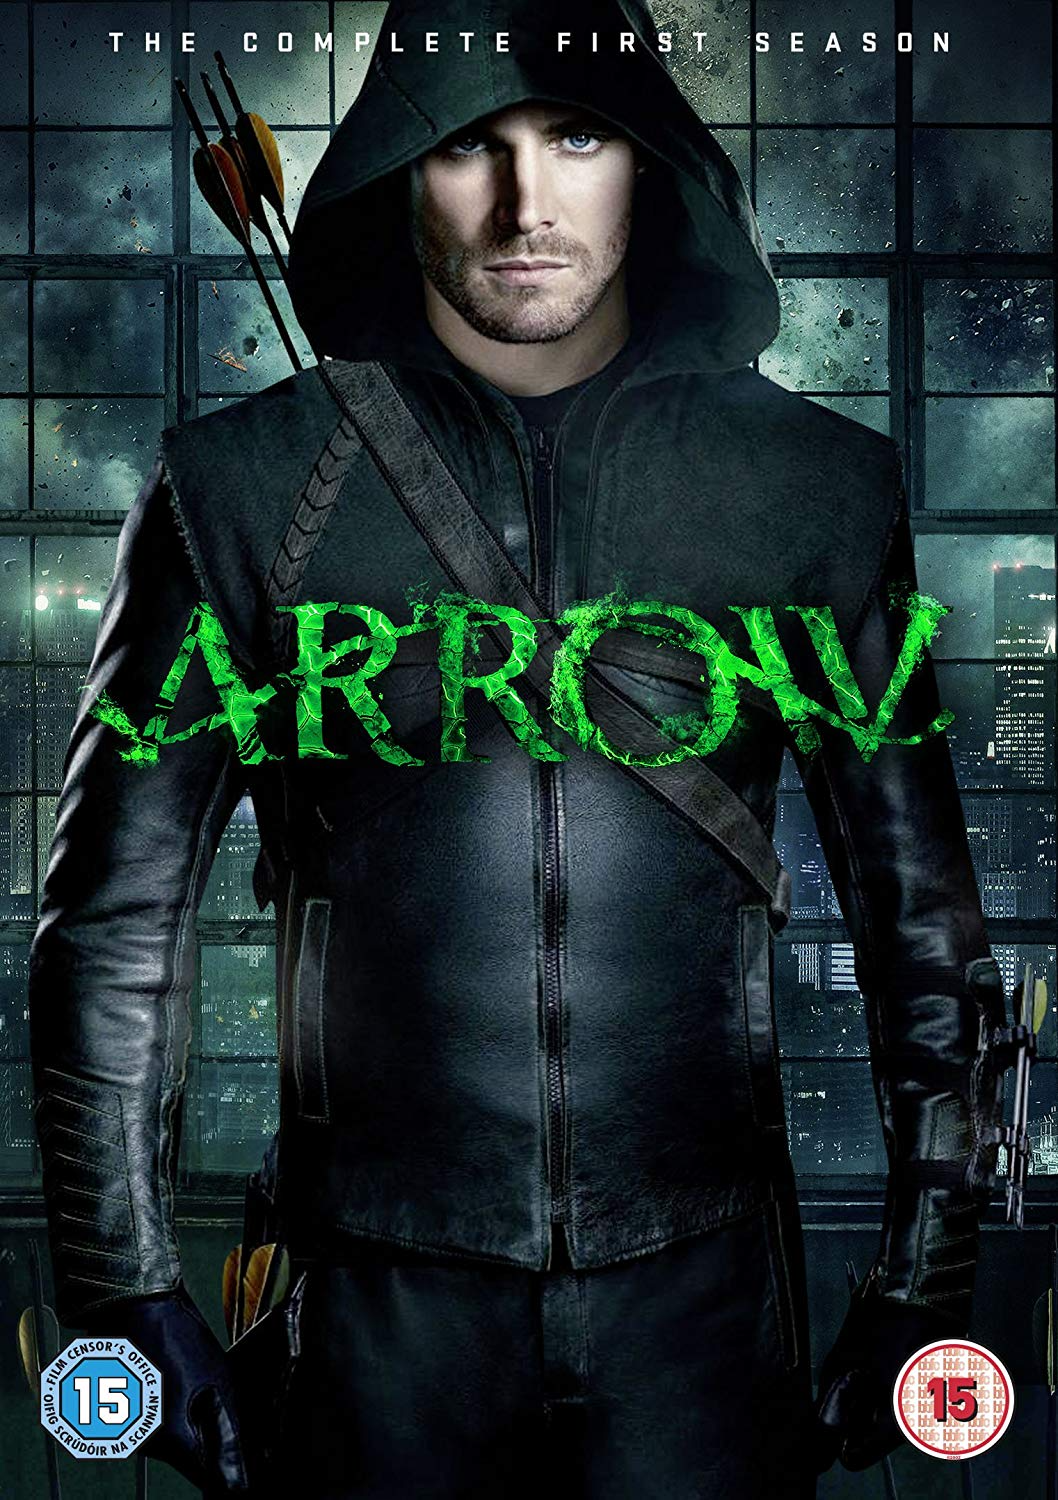 Arrow - The Complete First Season region 2 cover.png